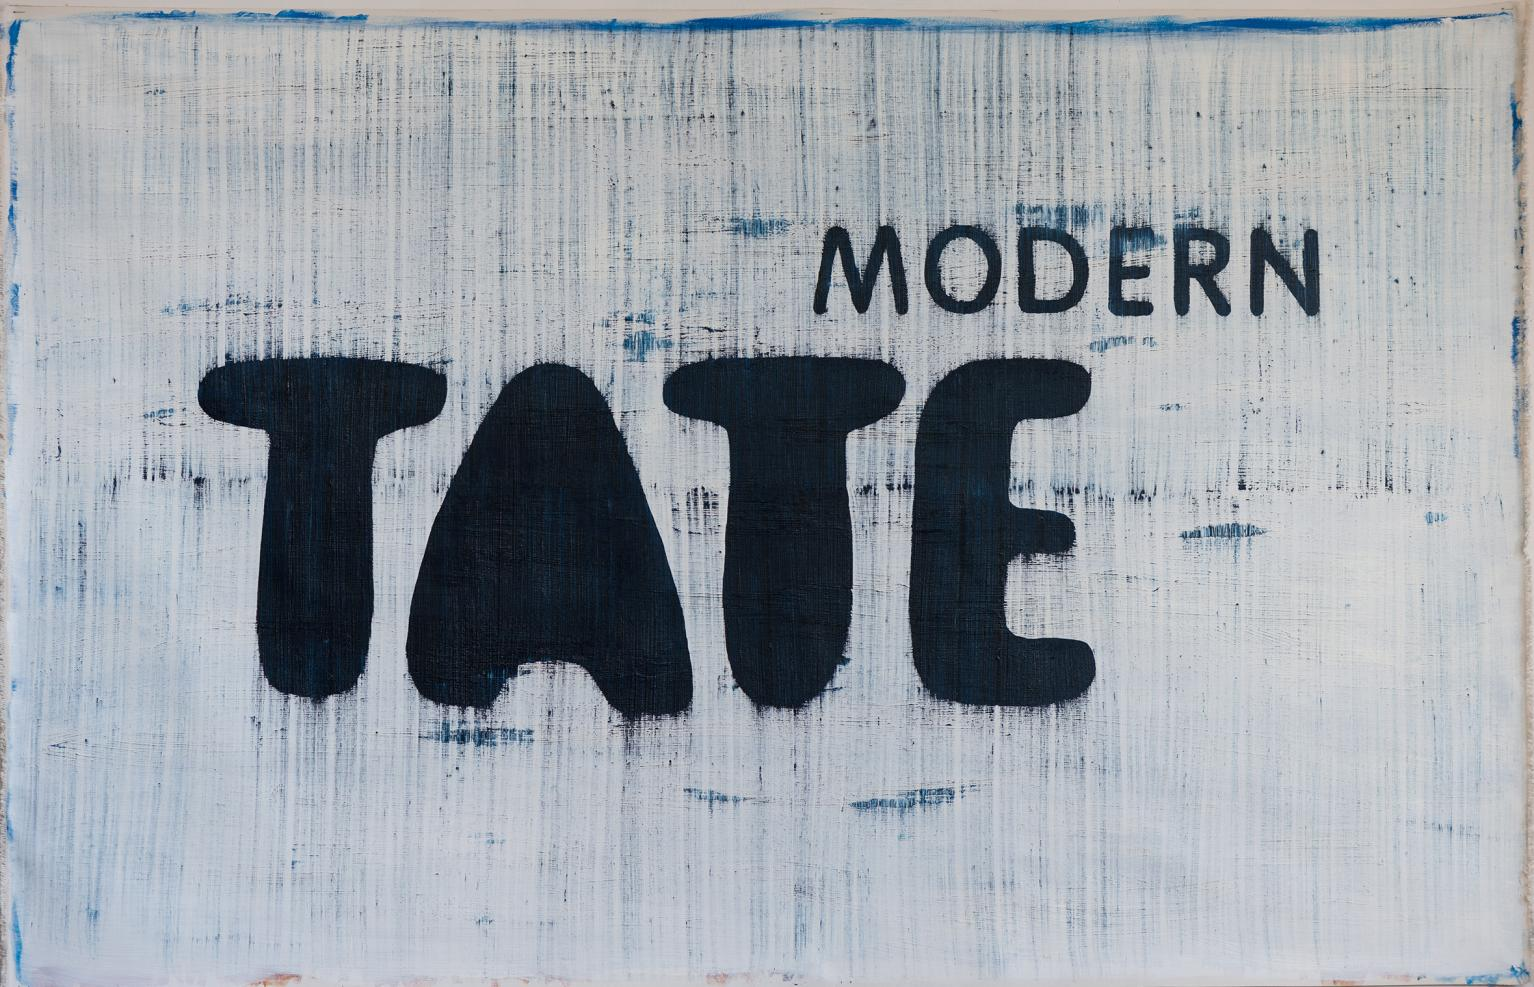 Tate Modern (Museums) (2012) - by Ohne Titel (Florence Drake Del Castillo)